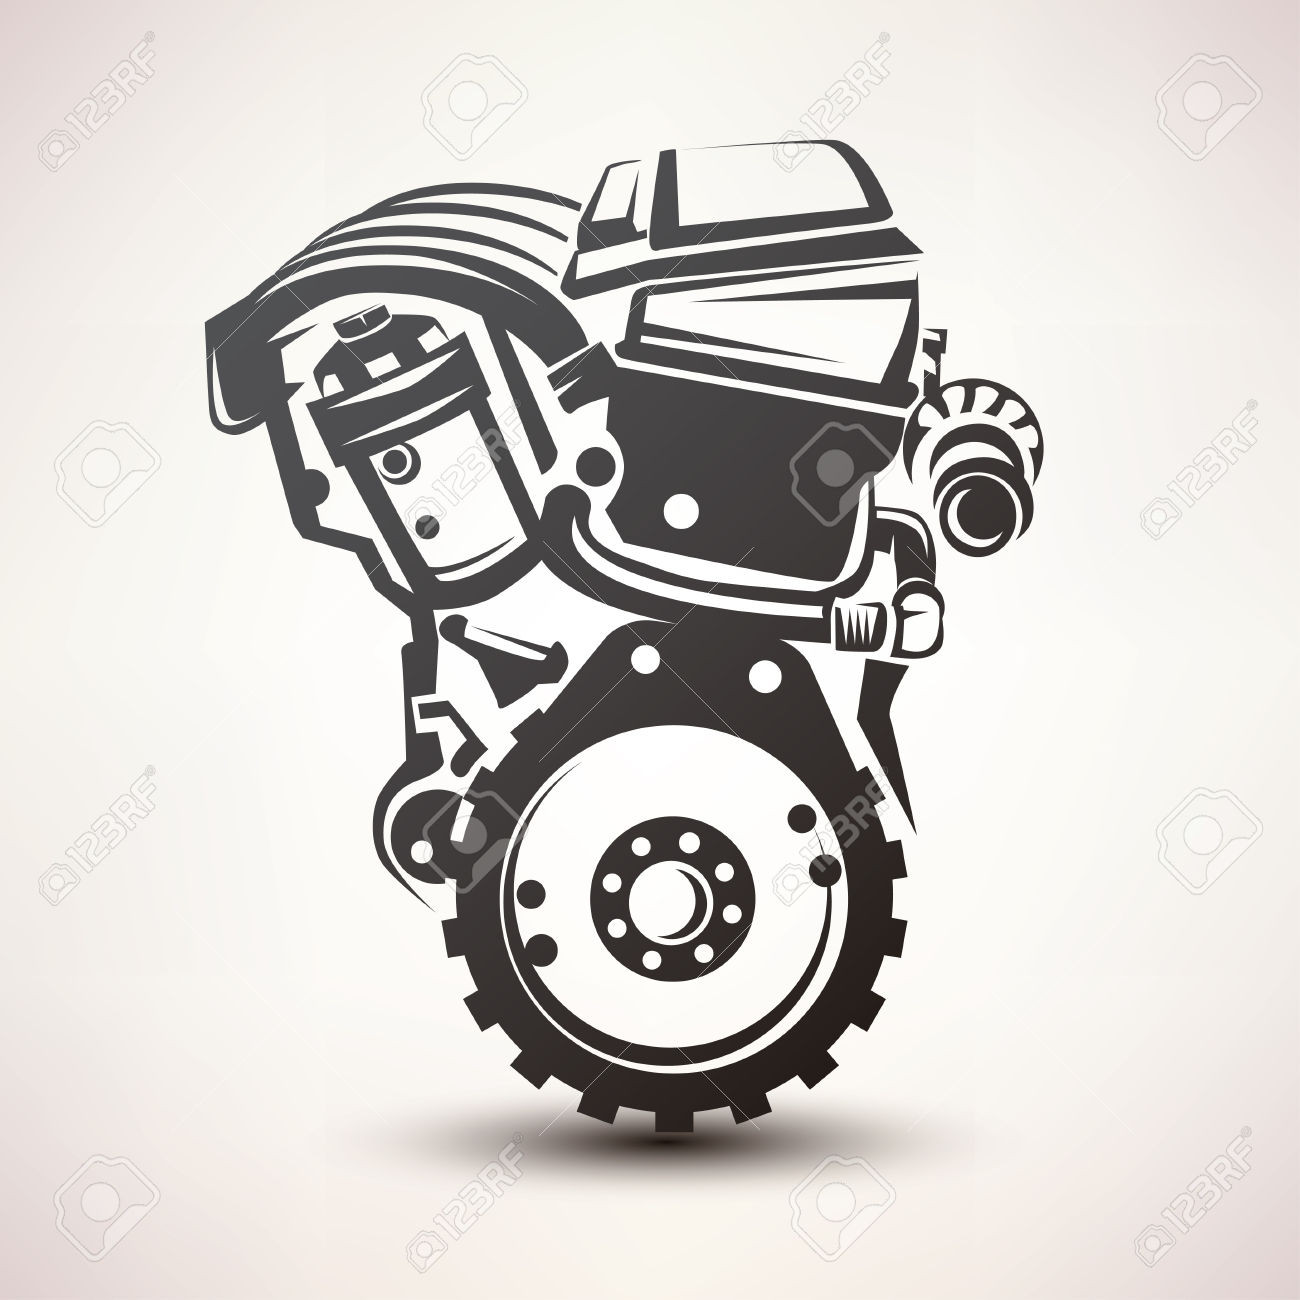 Block clipart motor silhouette.  check engine stock